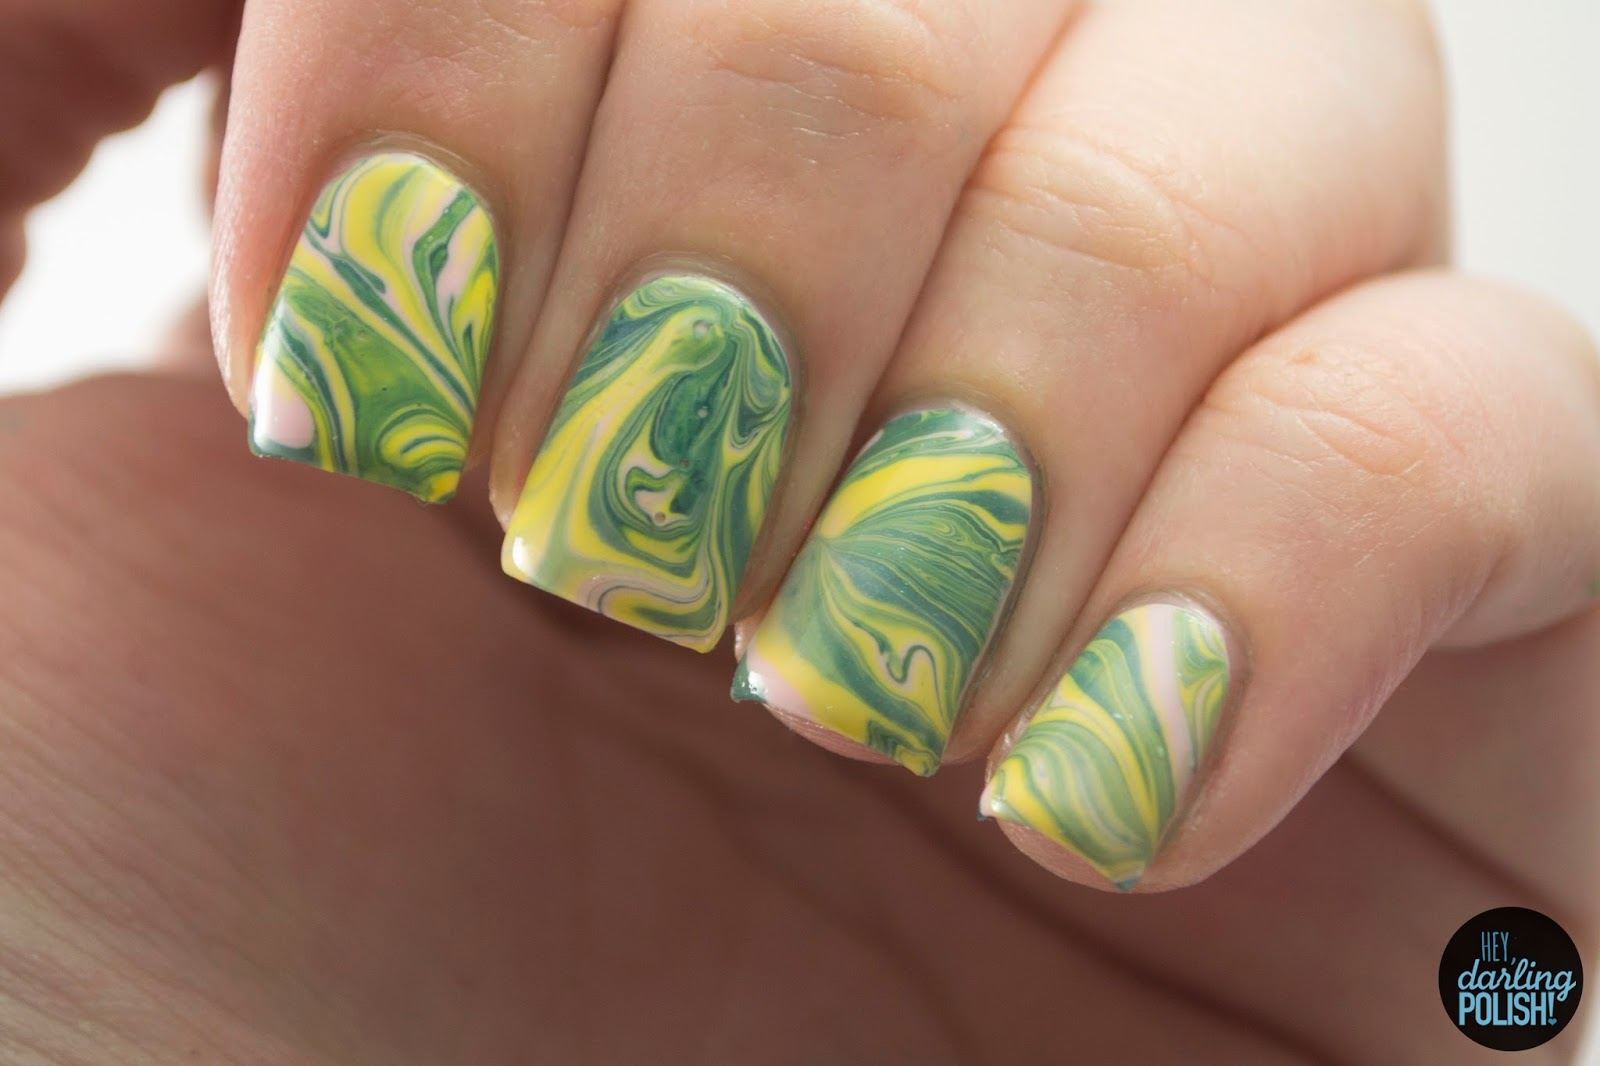 nails, nail art, nail polish, polish, yellow, blue, pink, watermarble, hey darling polish, tri polish challenge, tpc